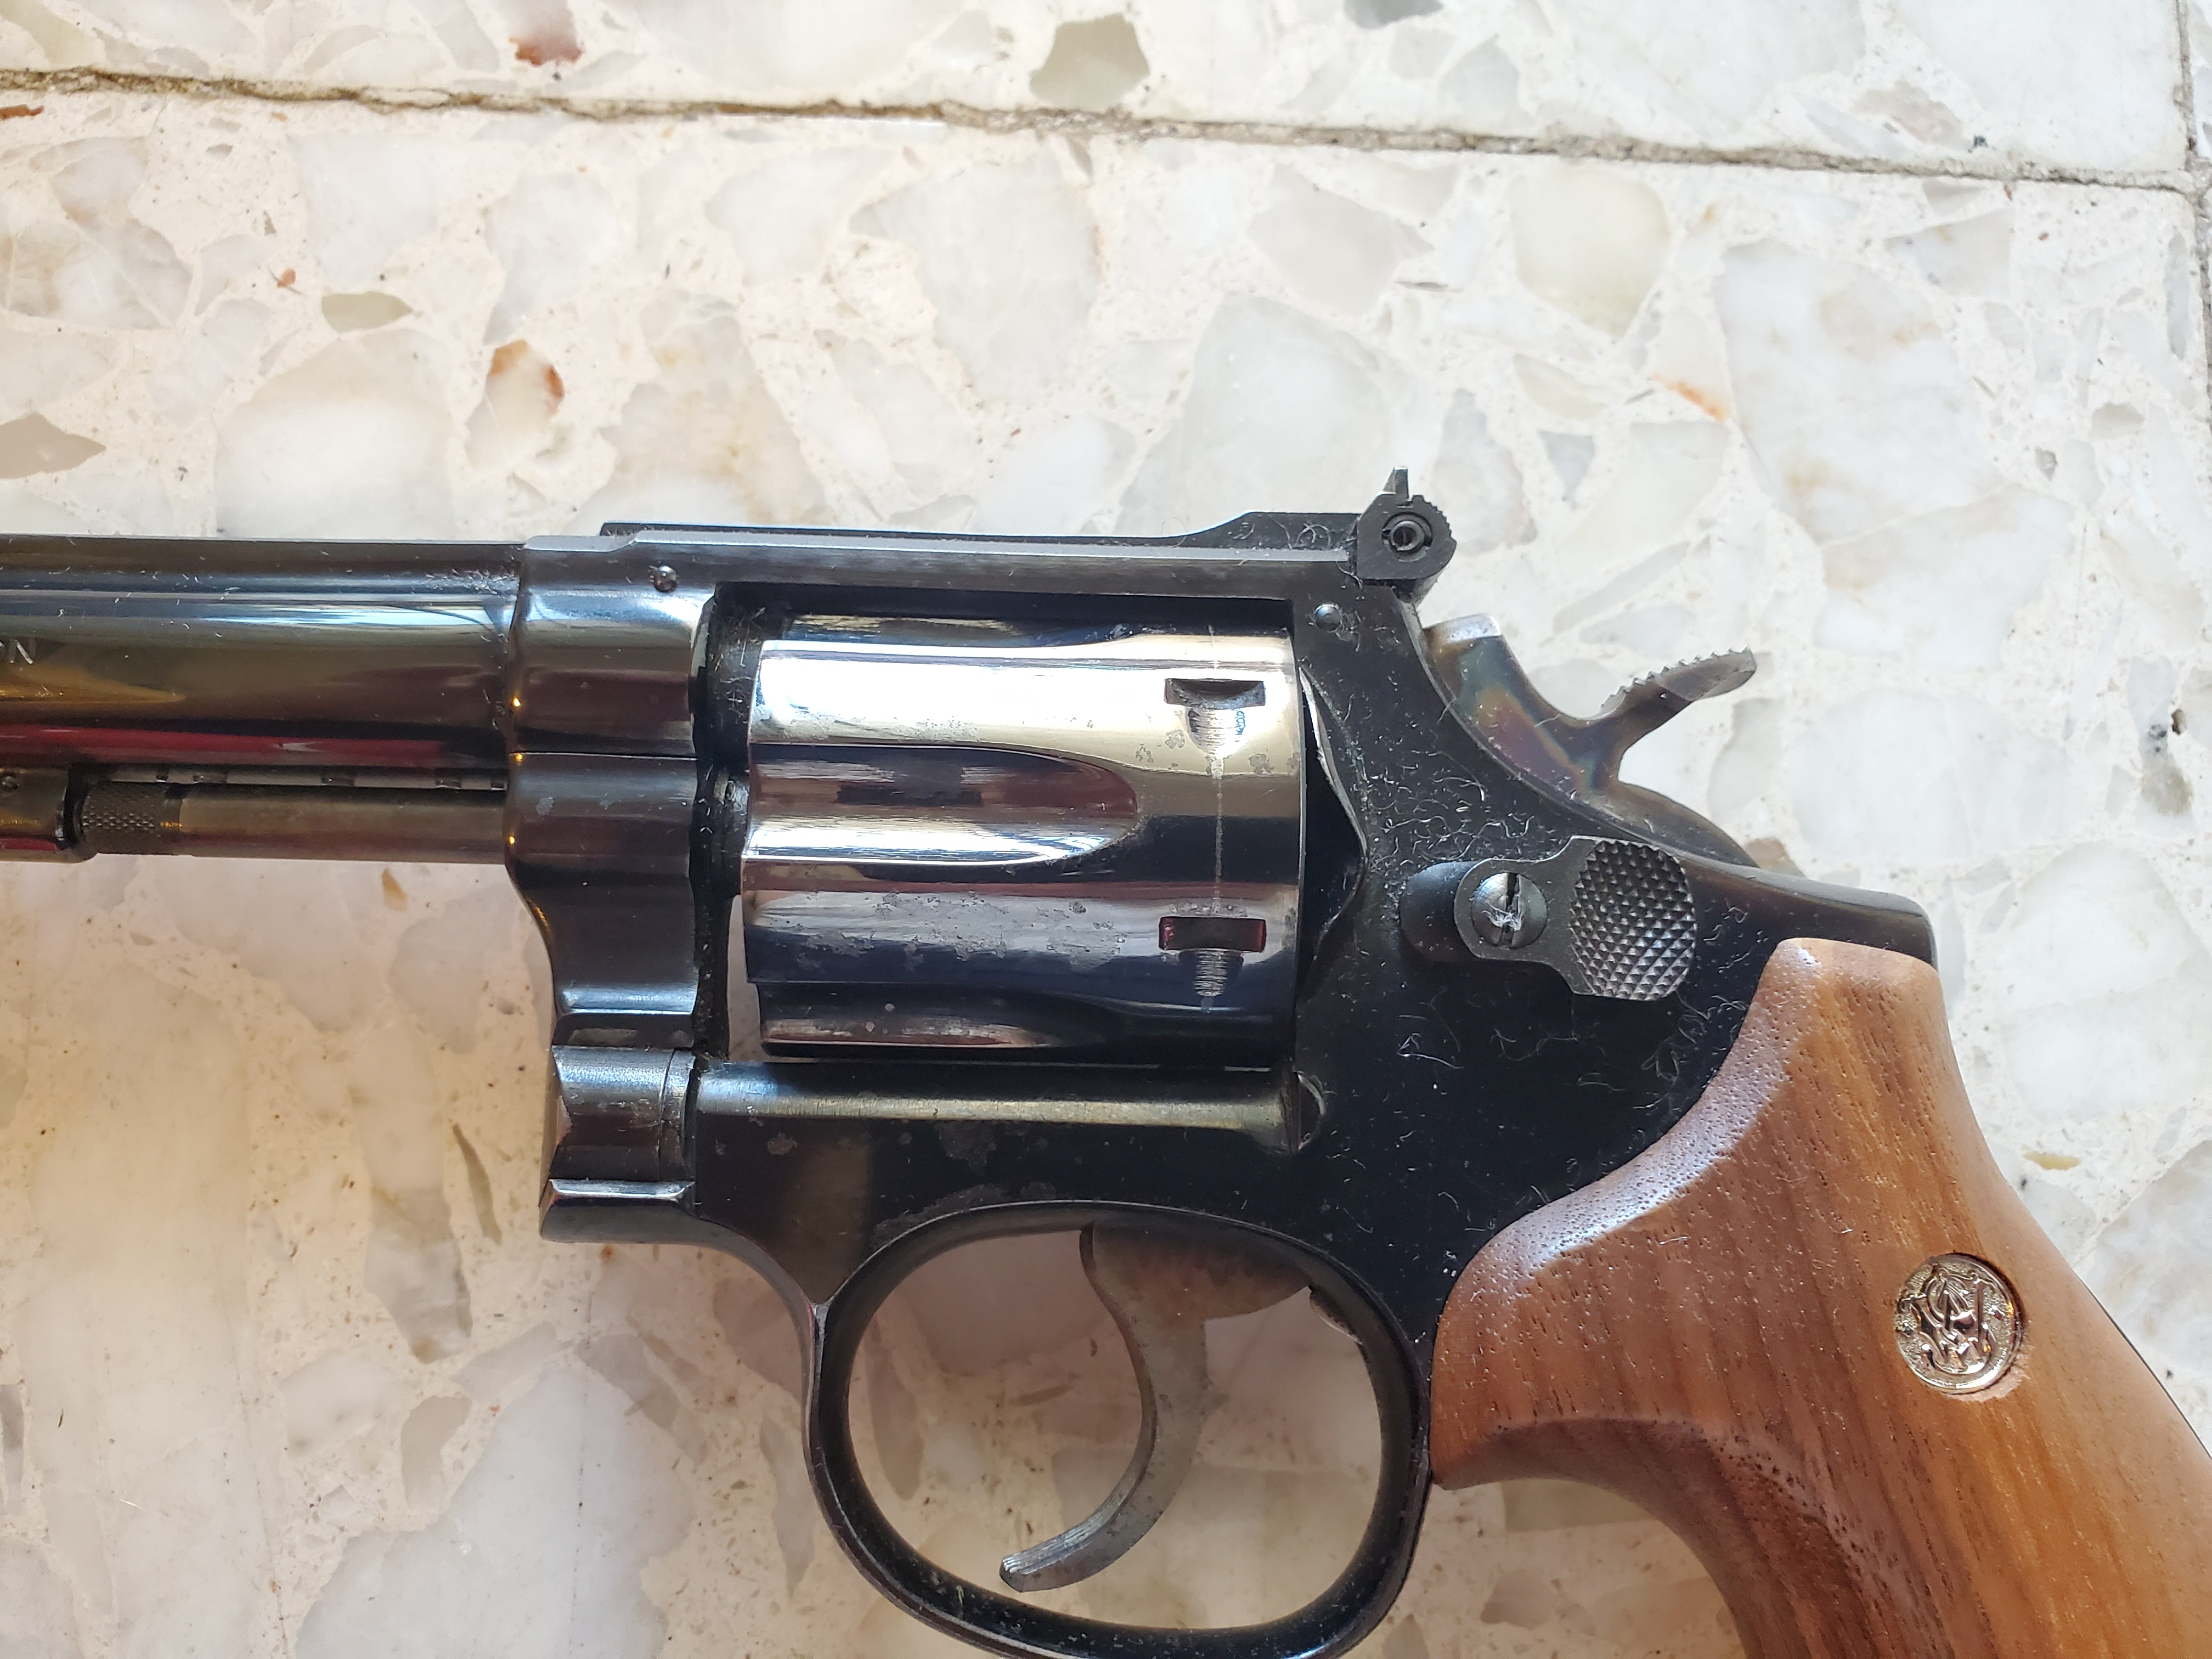 WTS:  Smith and Wesson Model 17-4, 22 LR-20190705_171259.jpg